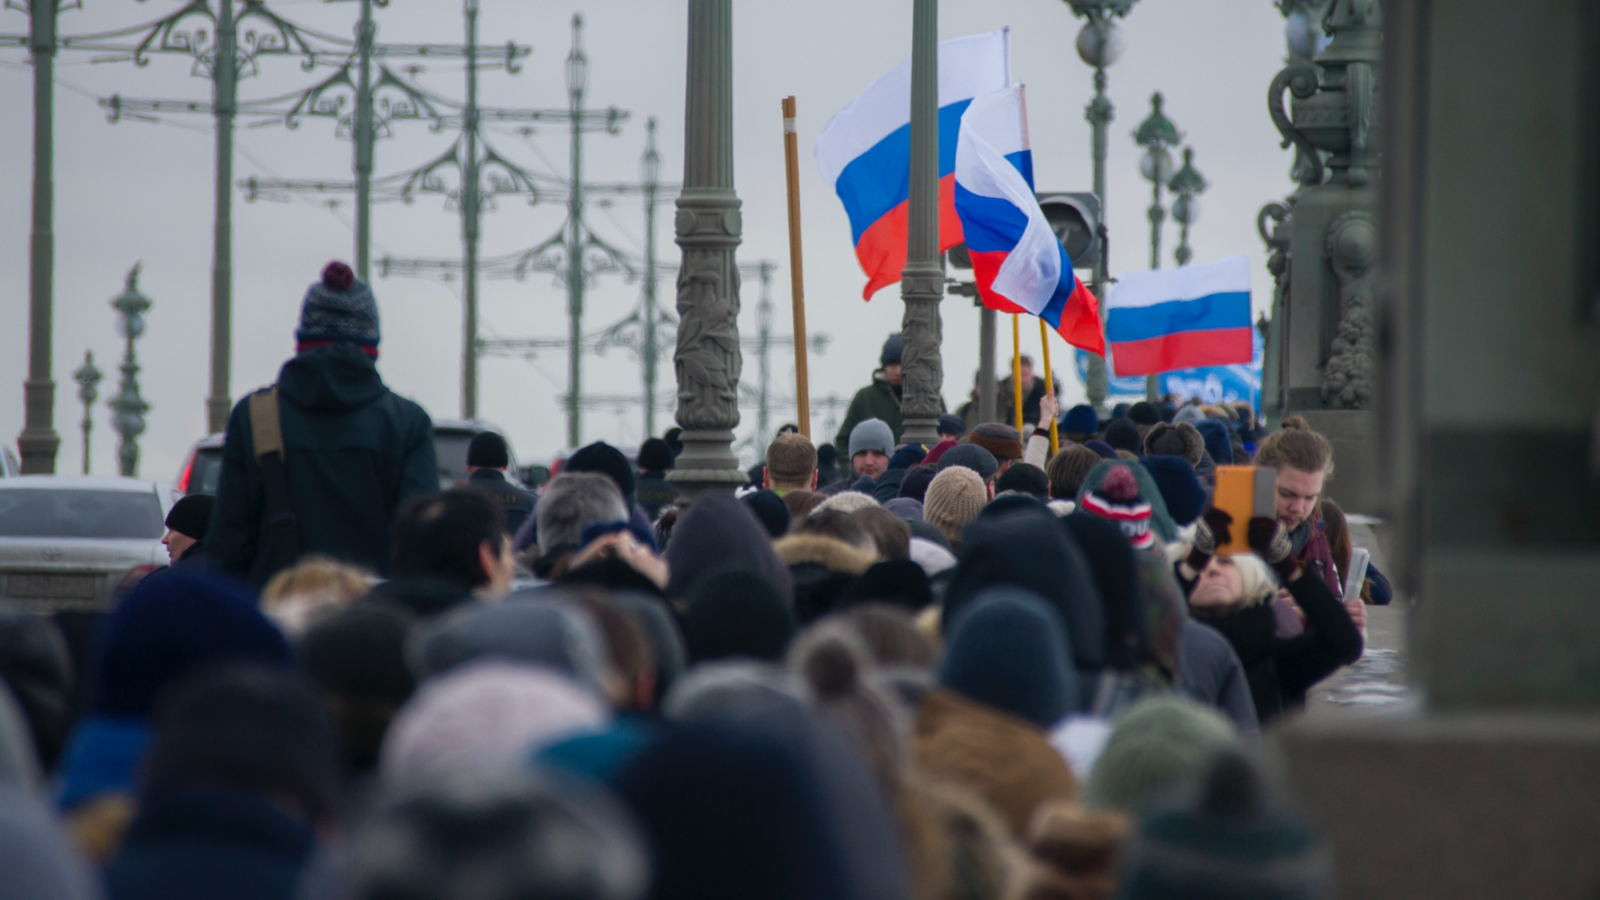 A large crowd of people carrying Russian flags cross a bridge